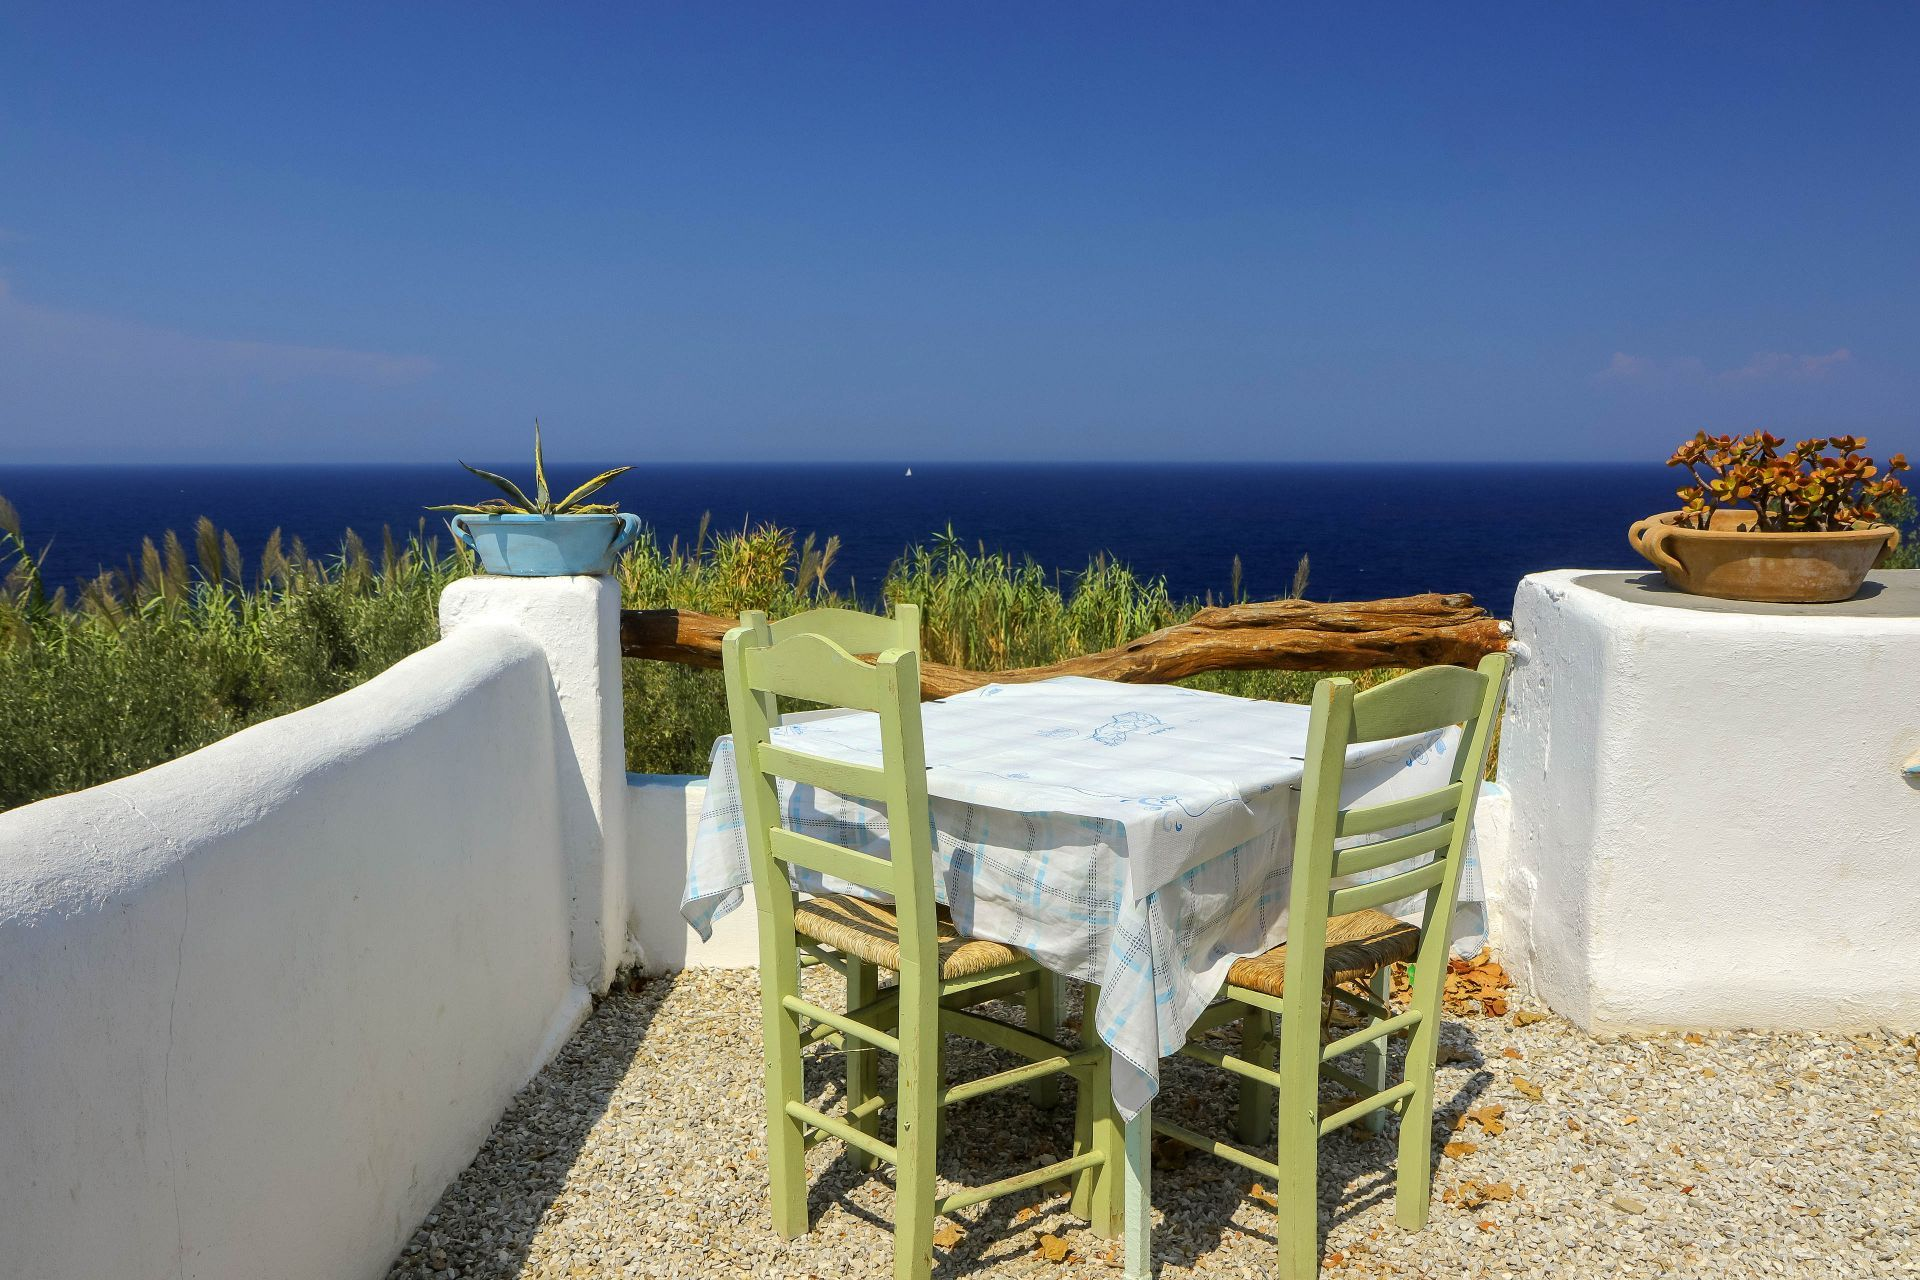 Places to eat and drink in Ikaria